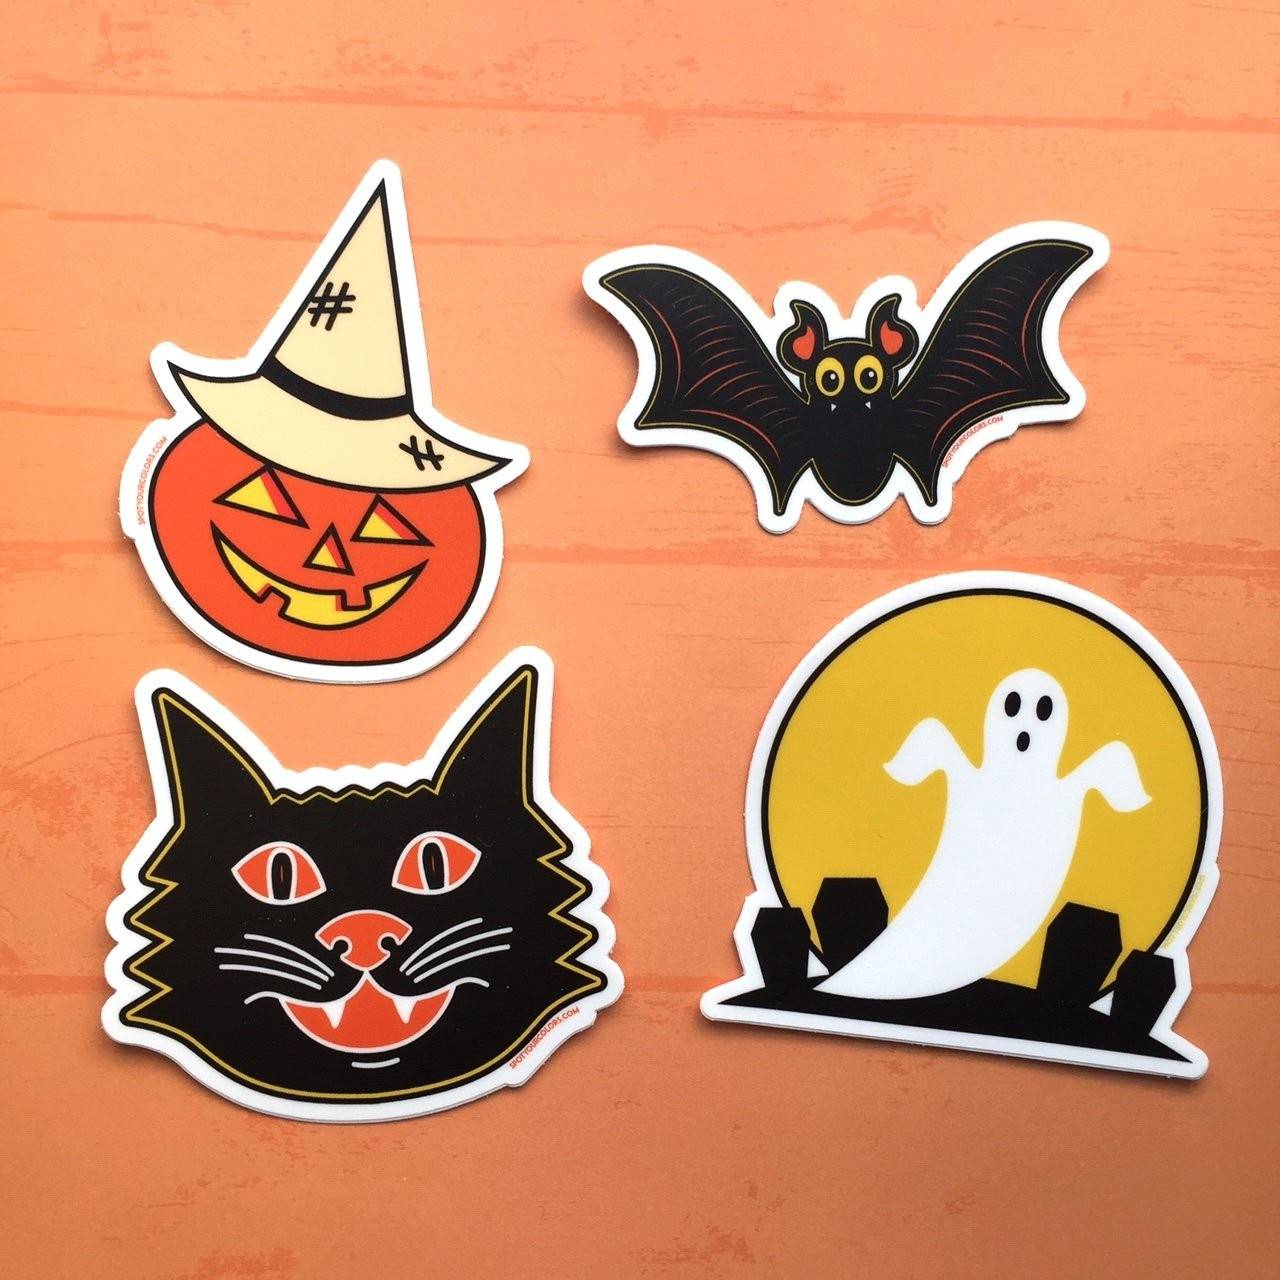 "Vintage Halloween Sticker Pack 3"" - 4 stickers"